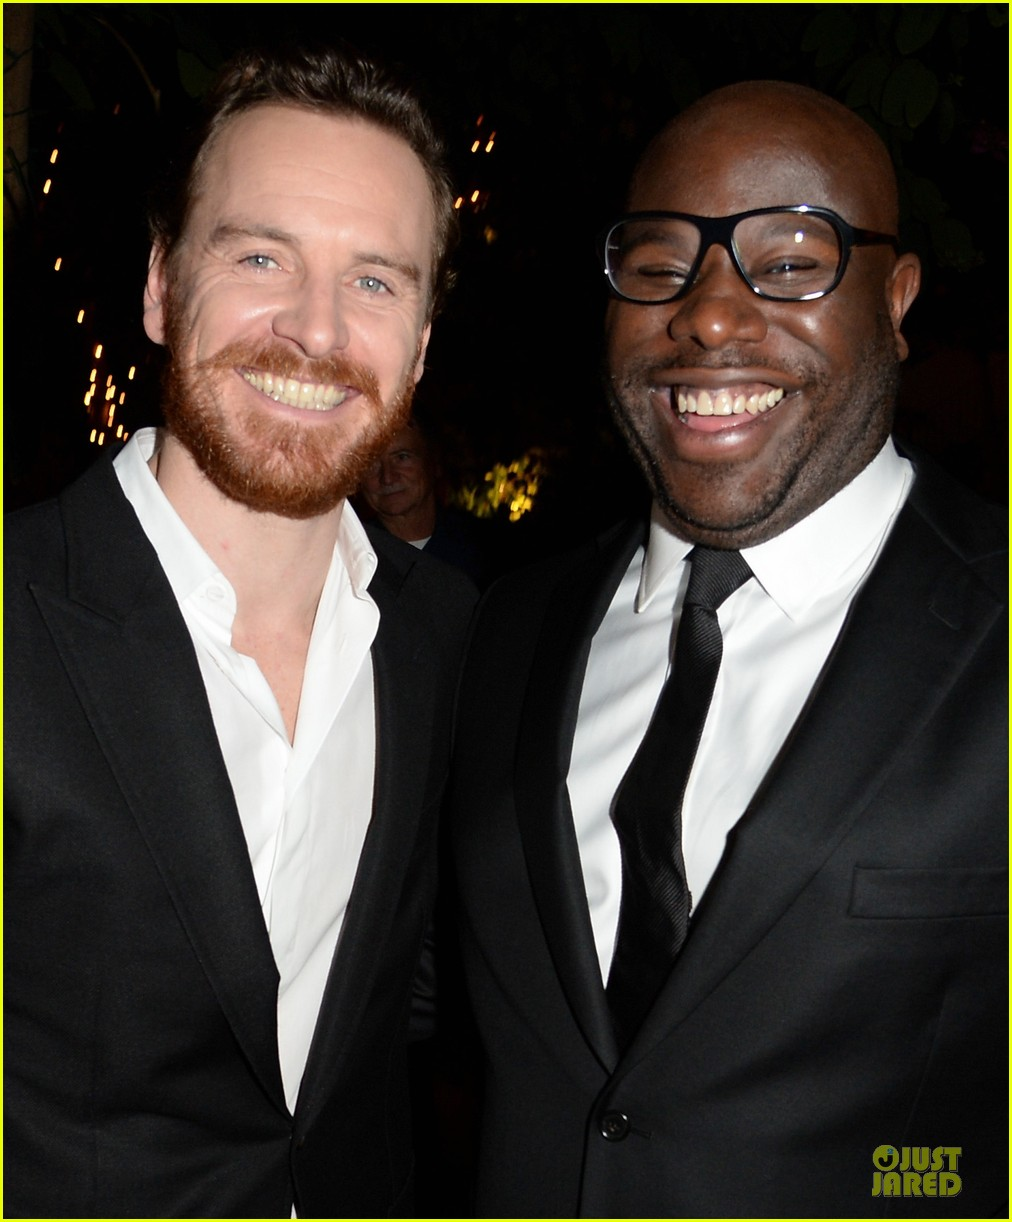 michael fassbender chiwetel ejiofor winners at aacta awards 2014 02